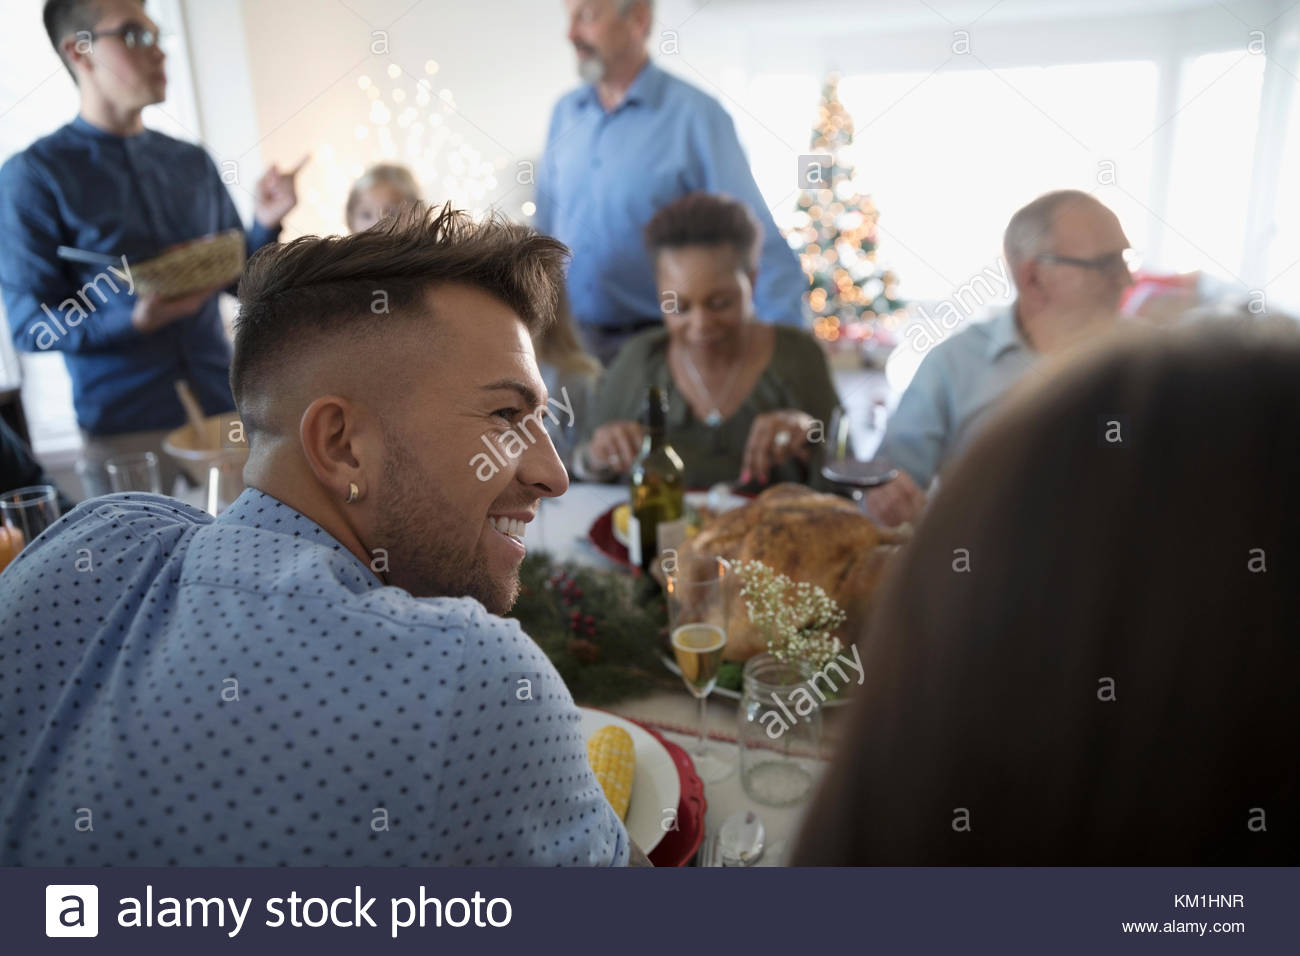 Smiling young man enjoying turkey Christmas dinner with family at table - Stock Image